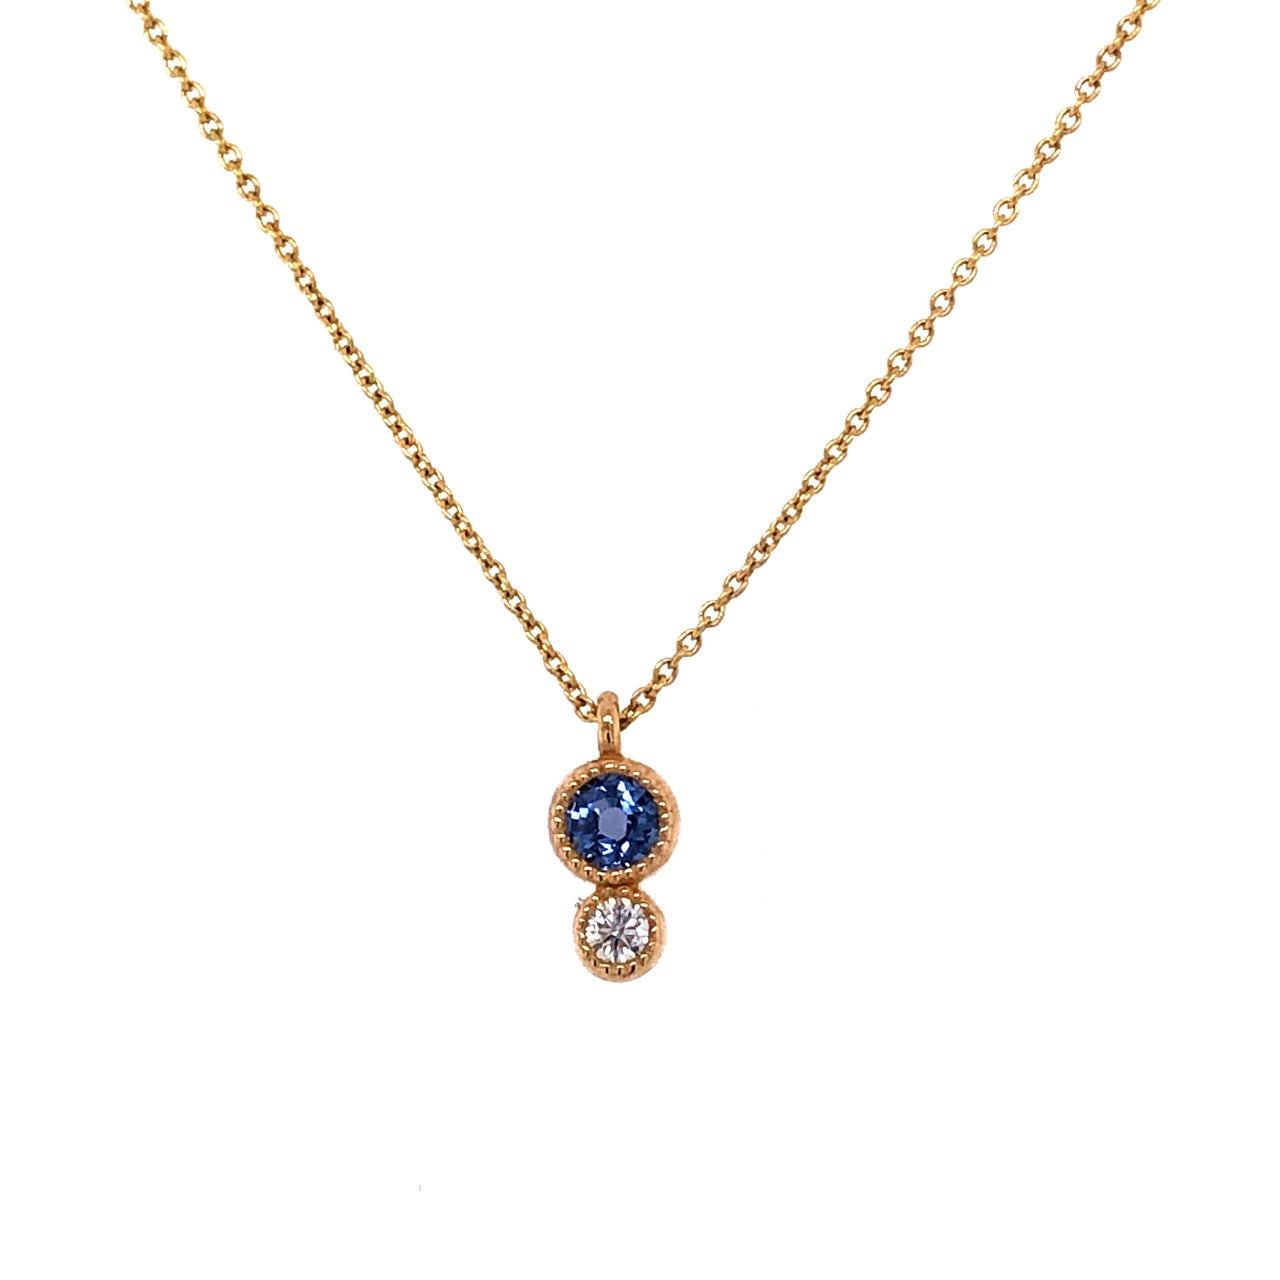 14K Yellow Gold Sapphire and Diamond Necklace.